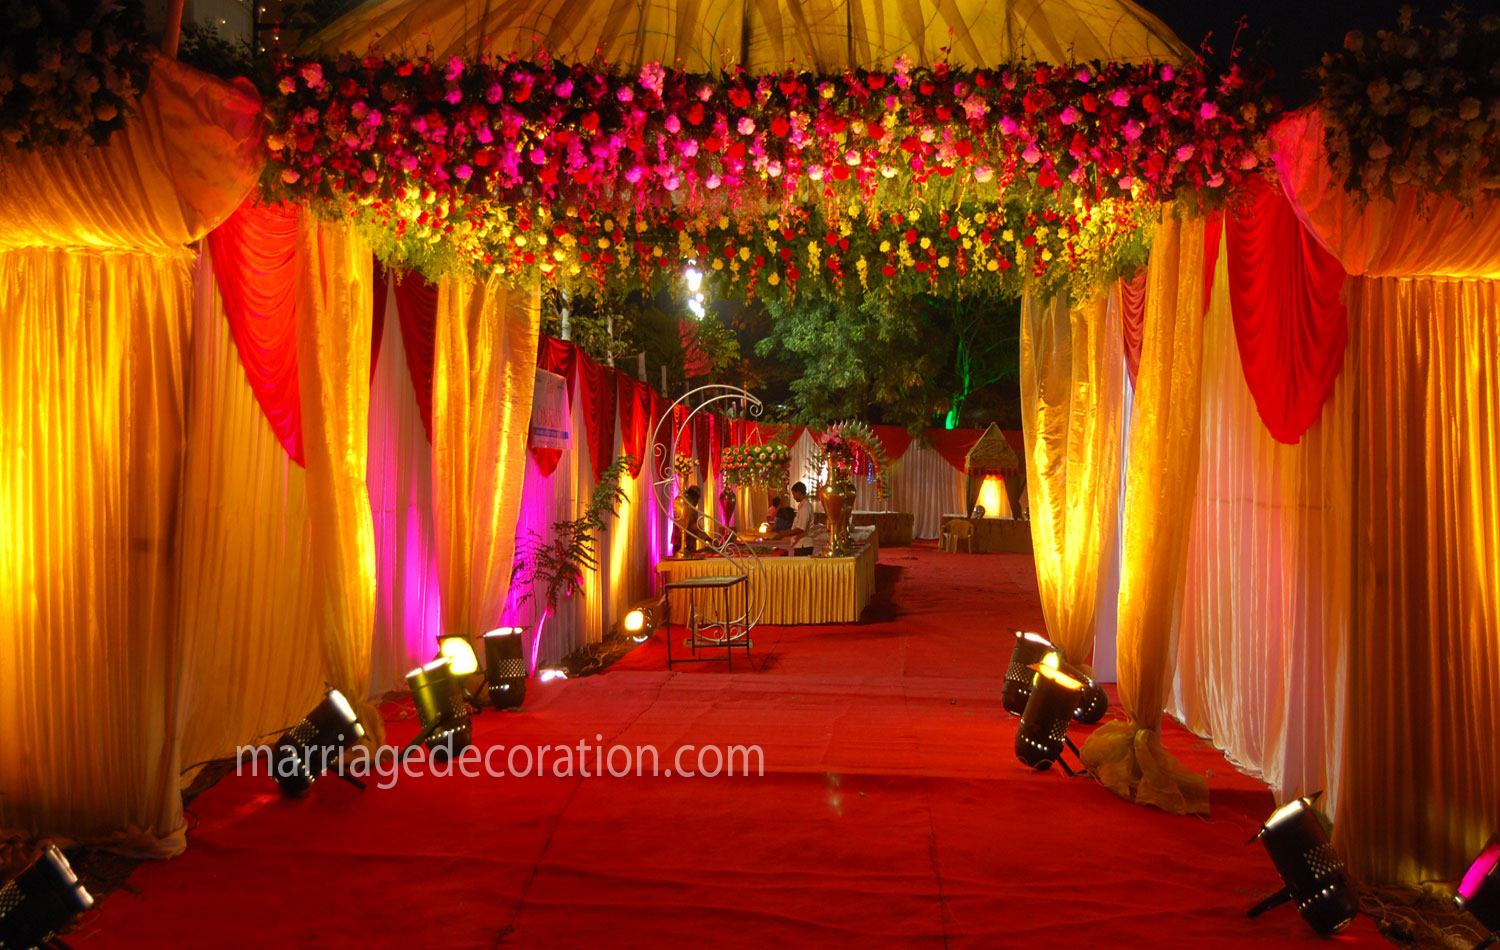 Wedding decorators romantic decoration for Wedding event decorators